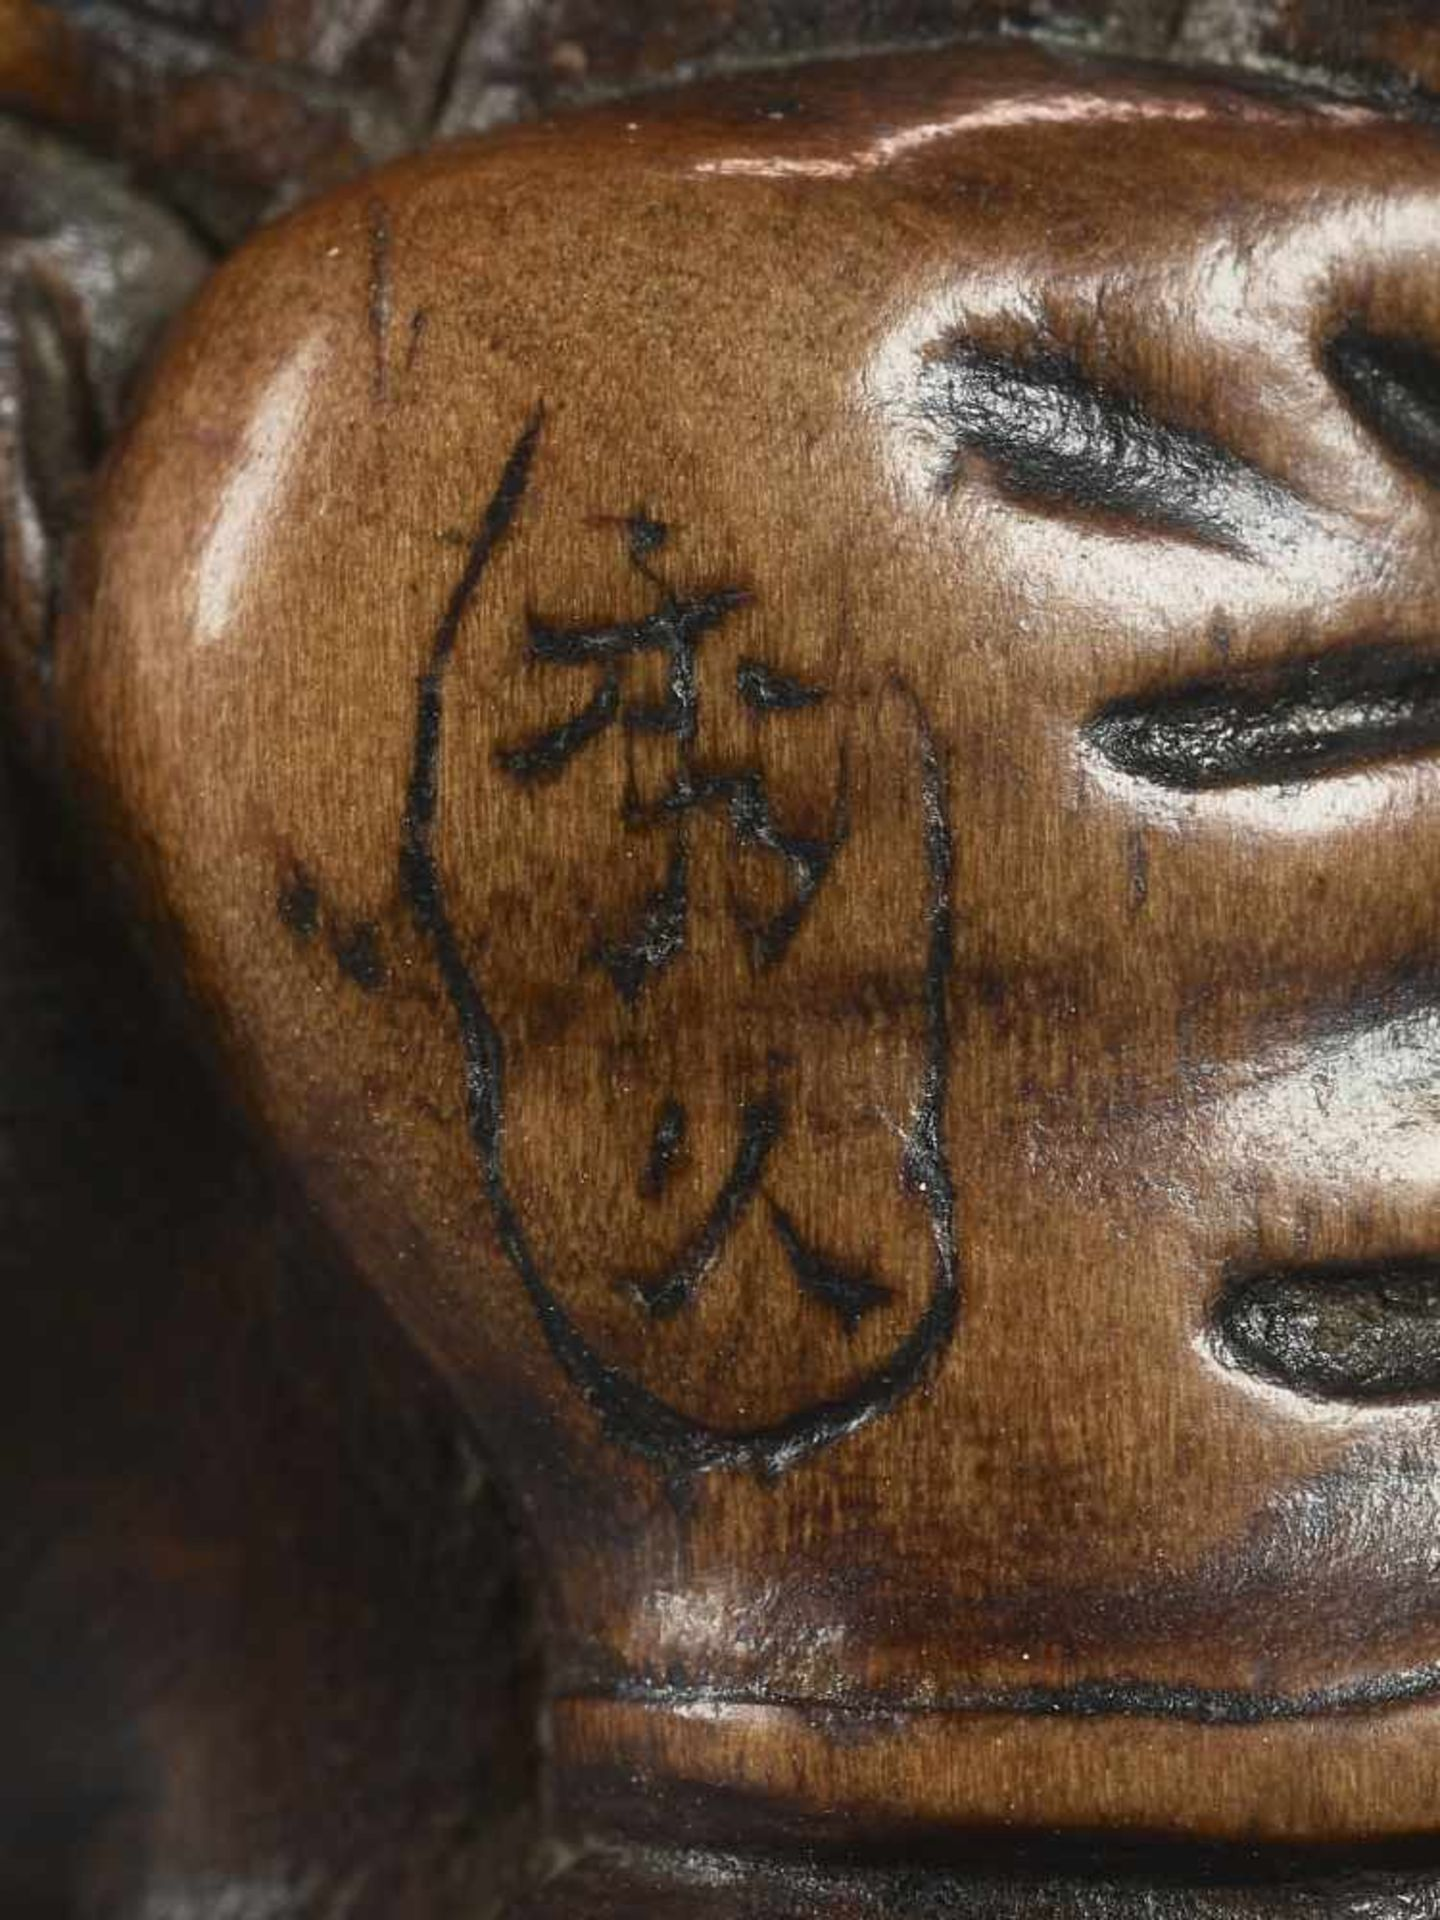 HIDEHISA: A RARE WOOD NETSUKE OF A THIEF STEALING THE MAGIC TANUKI KETTLE By Hidehisa, signed - Image 12 of 12